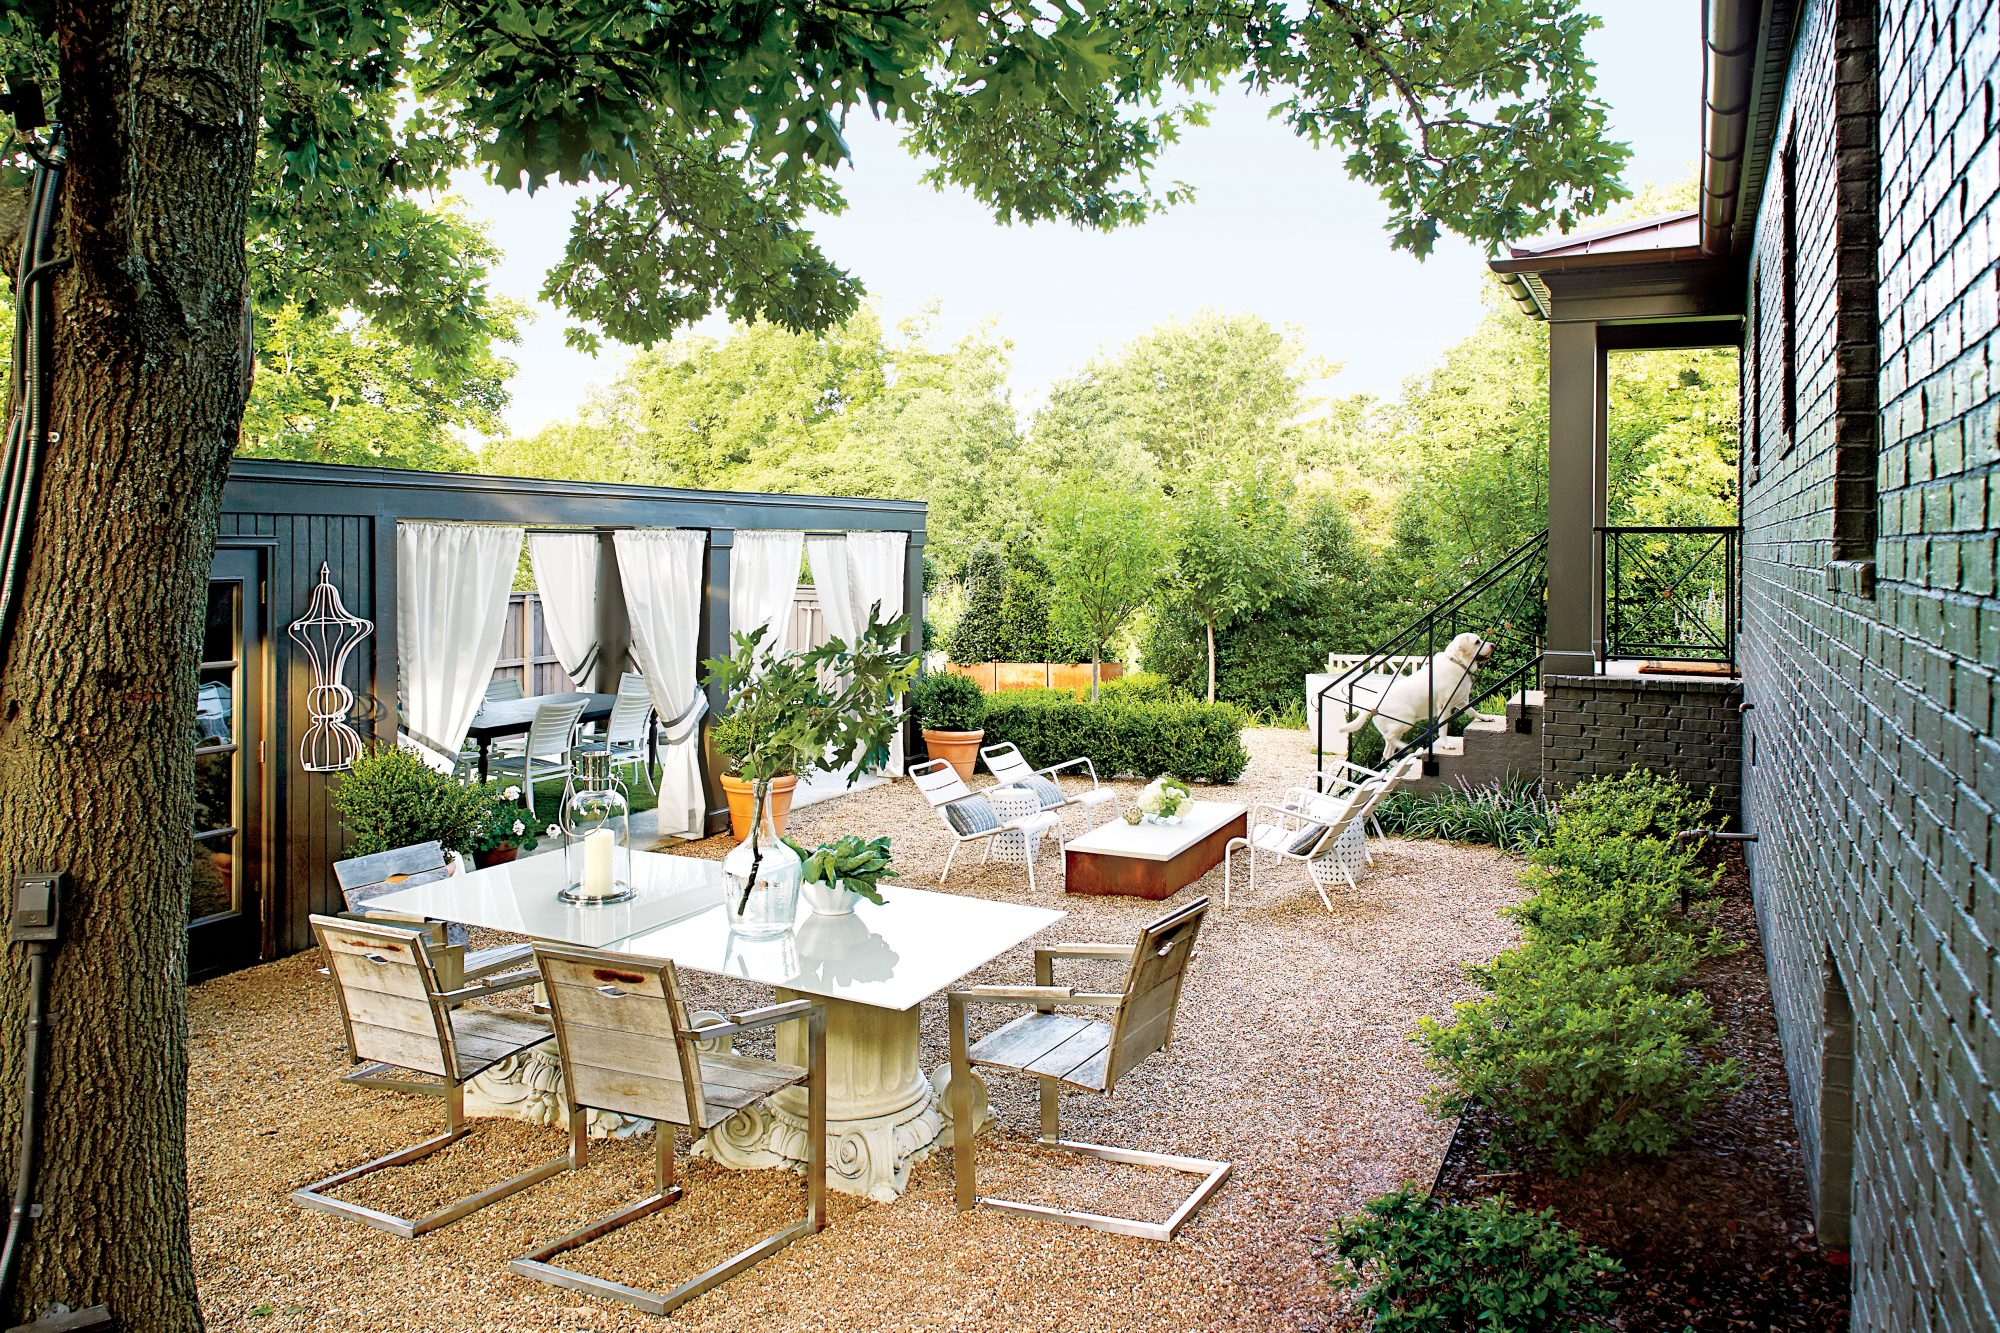 Gravel Courtyard with Seating and Dining Space